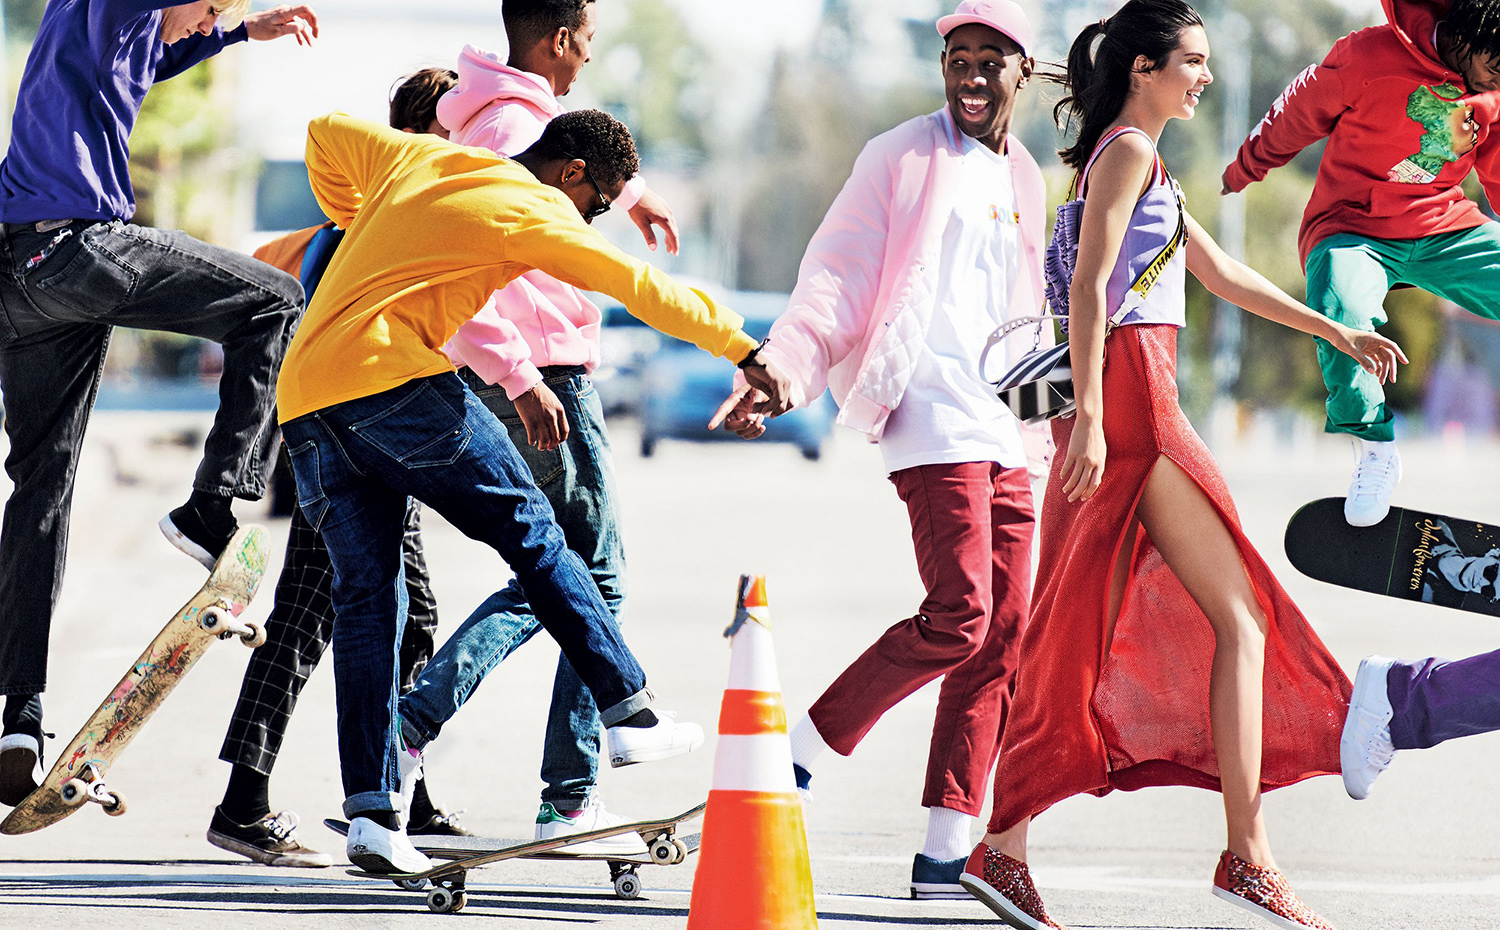 Tyler The Creator and Kendall Jenner For Vogue's 2017 January Issue